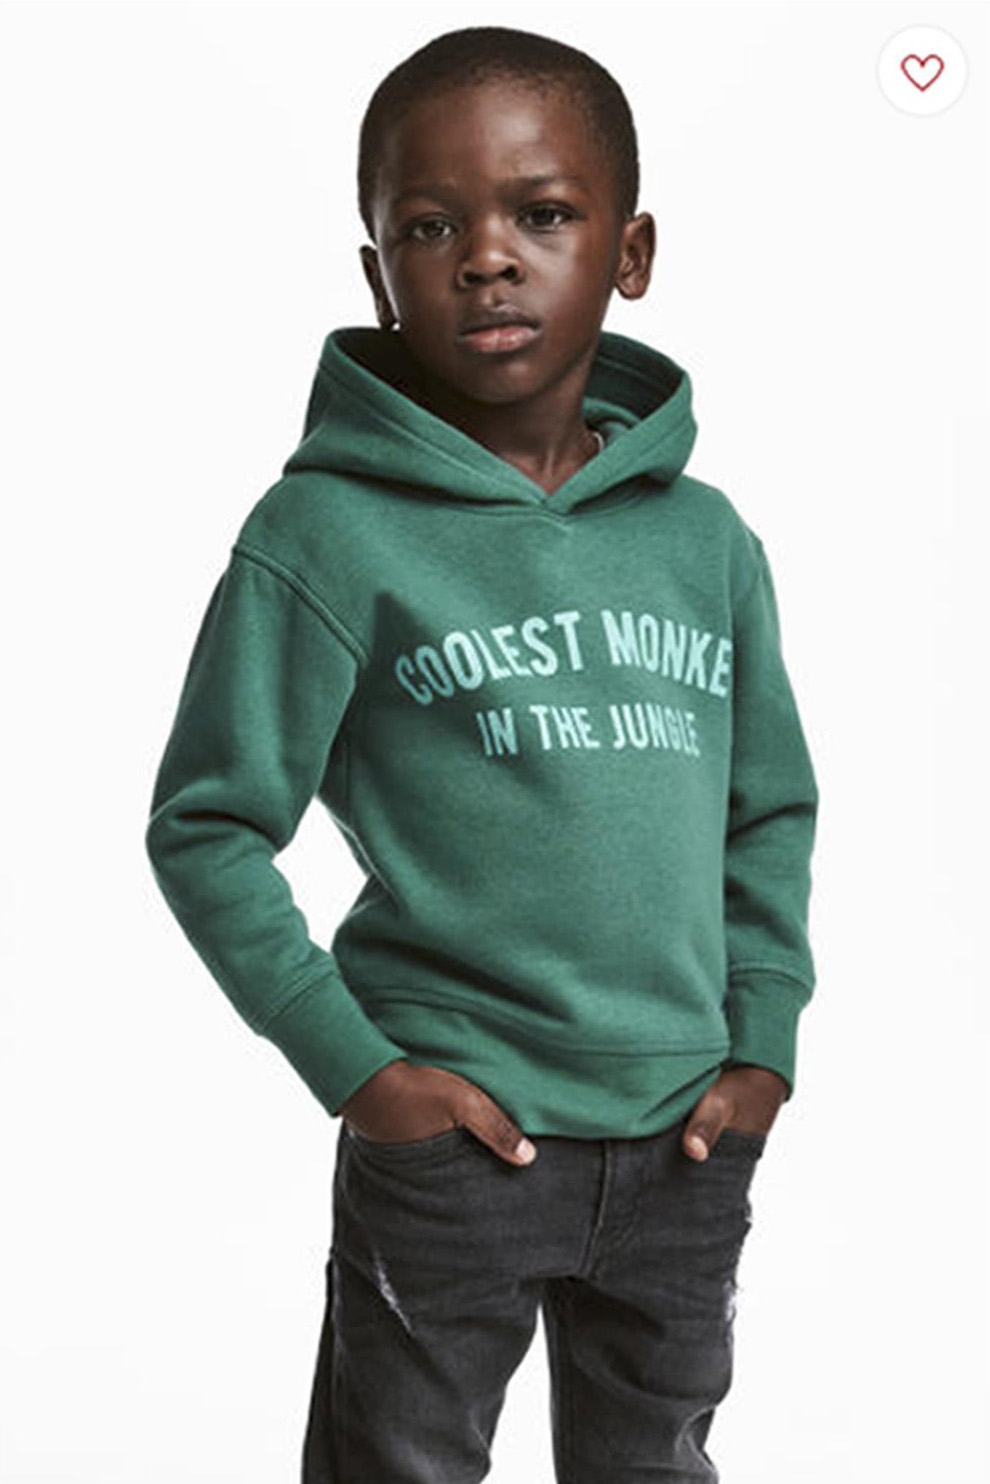 "Rassistische Werbung von H&M ""Coolest monkey in the jungle"""